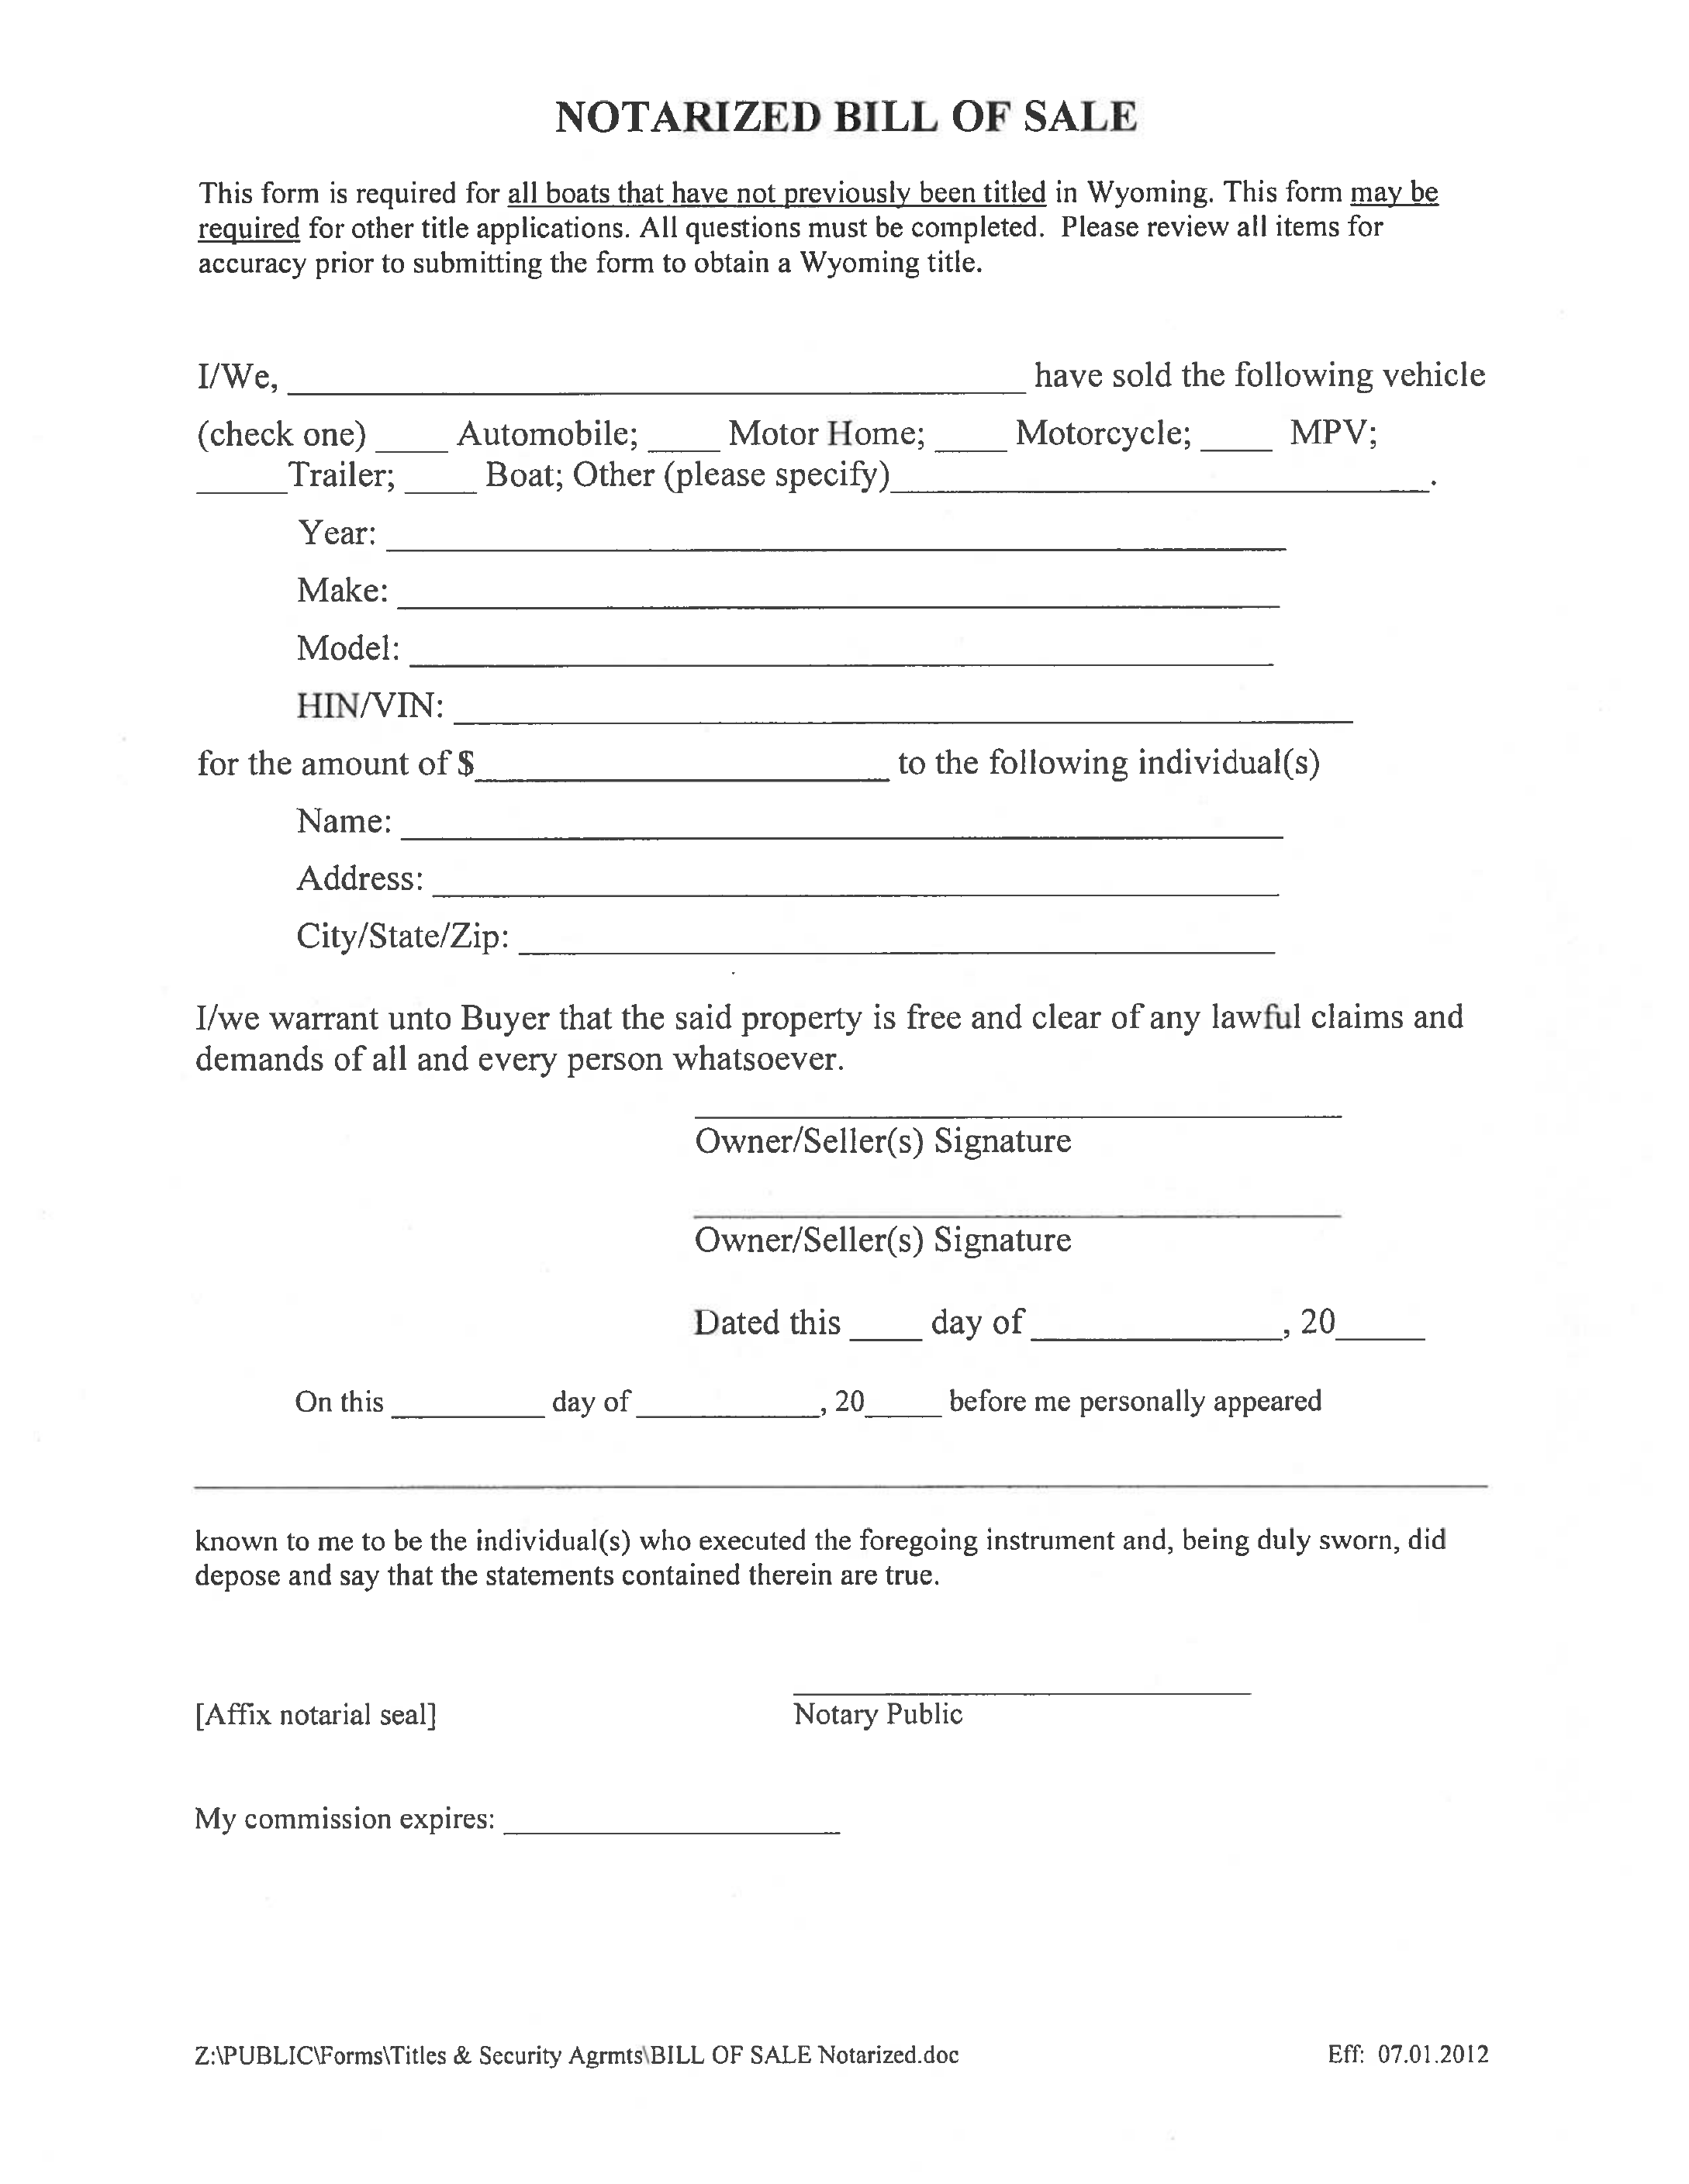 notarized boat bill of sale form